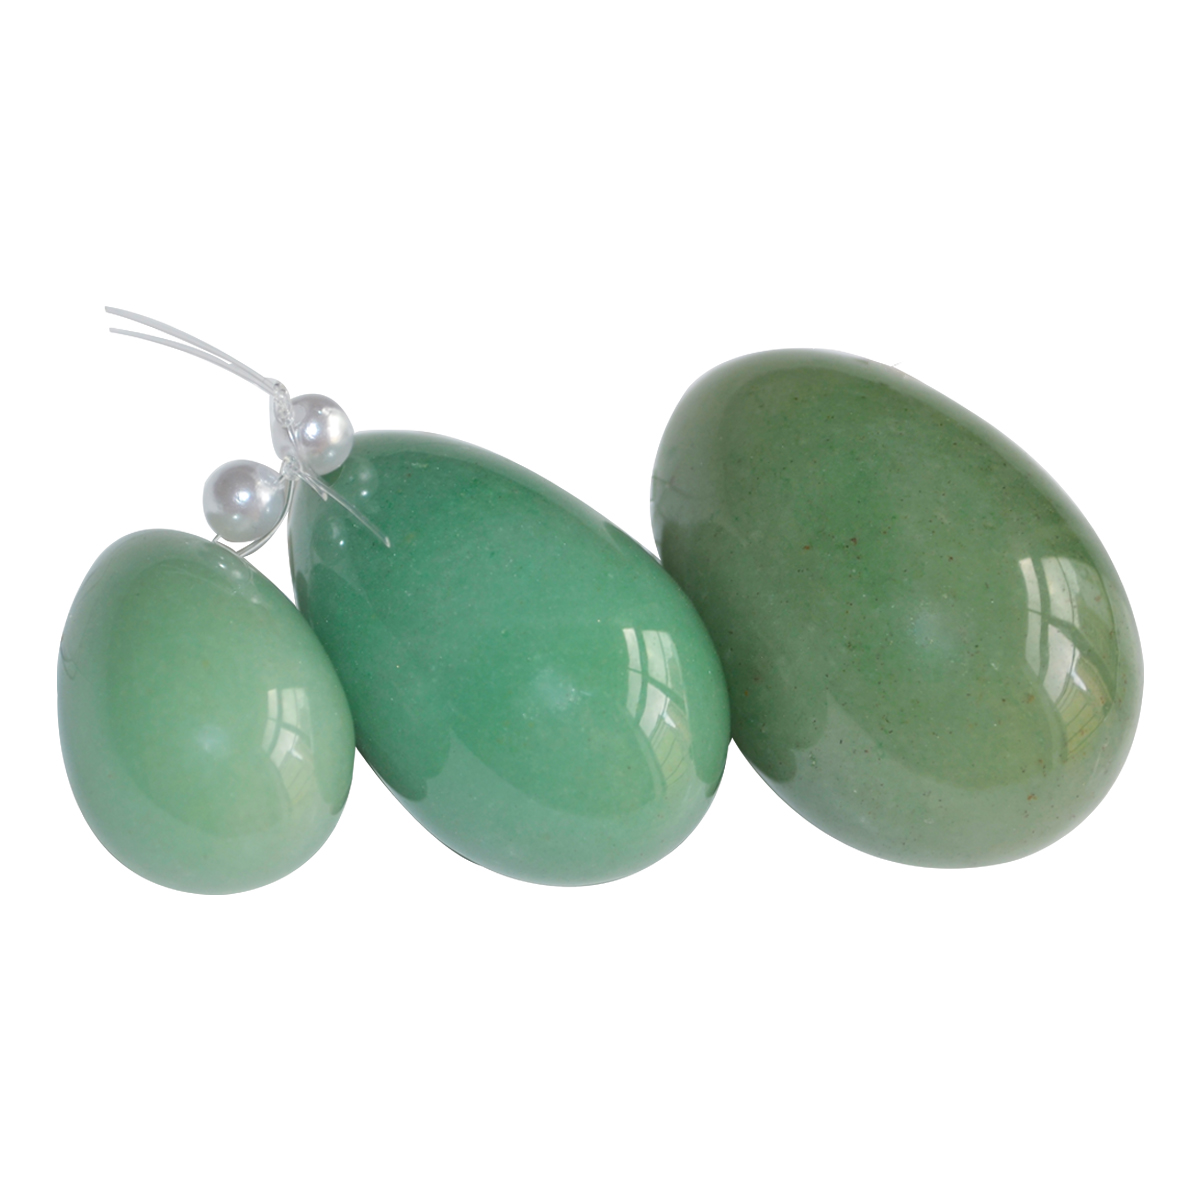 New 6Pcs(2sets) Body Massager Drilled Natural Jade Egg Green Aventurine Female Kegle Exercise Pelvic Vaginal Muscle Trainer himabm 1 pcs natural jade egg for kegel exercise pelvic floor muscles vaginal exercise yoni egg ben wa ball